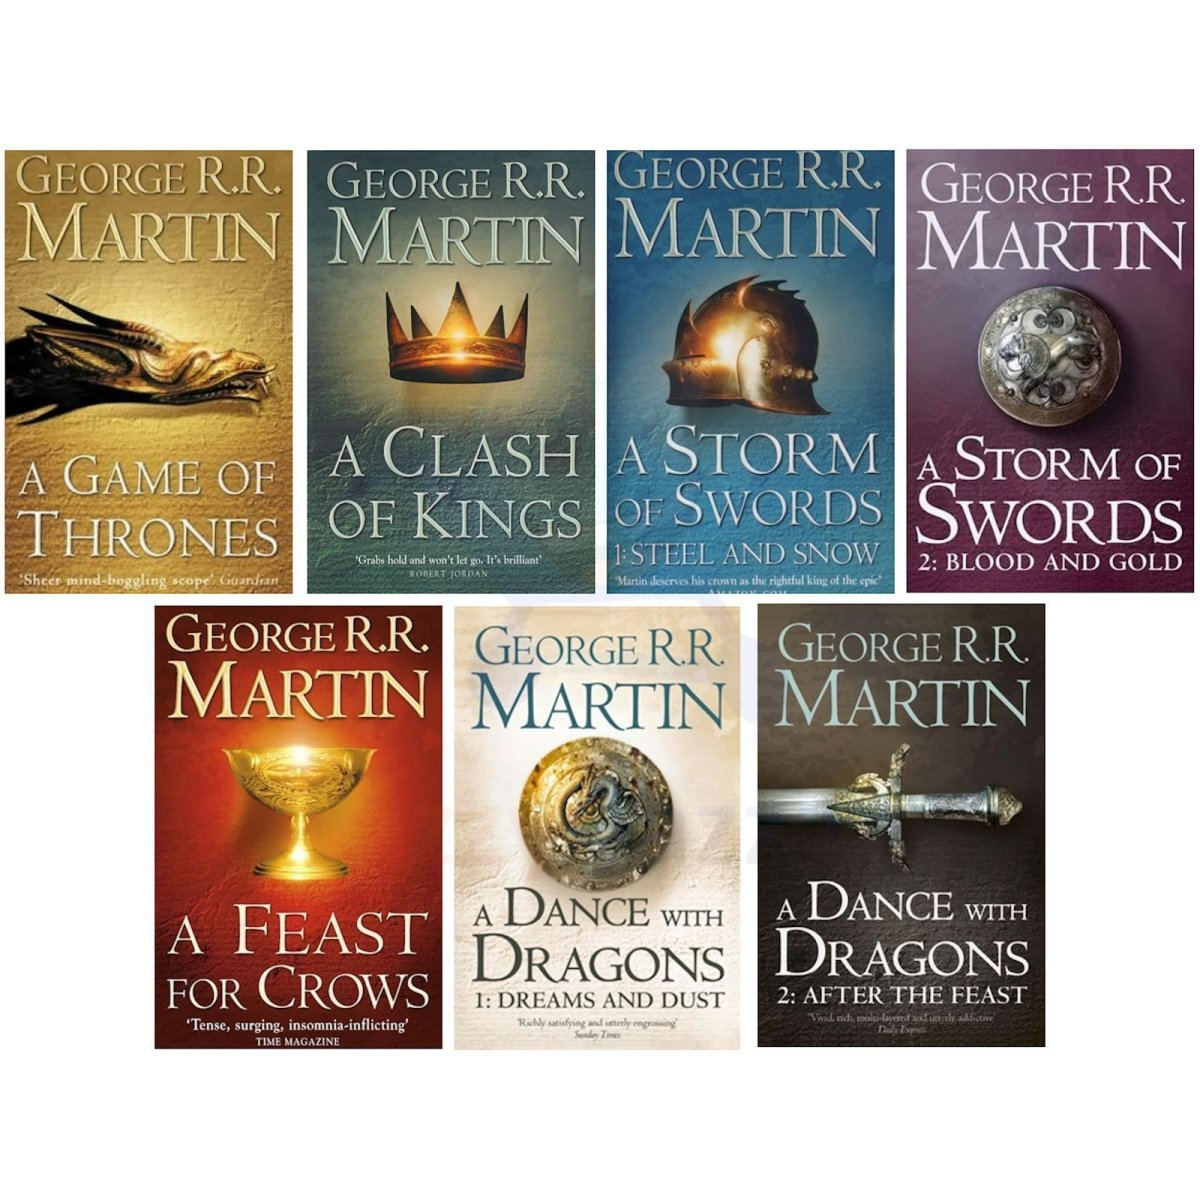 George Rr Martin Libros Game Of Thrones How Game Of Thrones Fell Victim To Its Own Magnificence